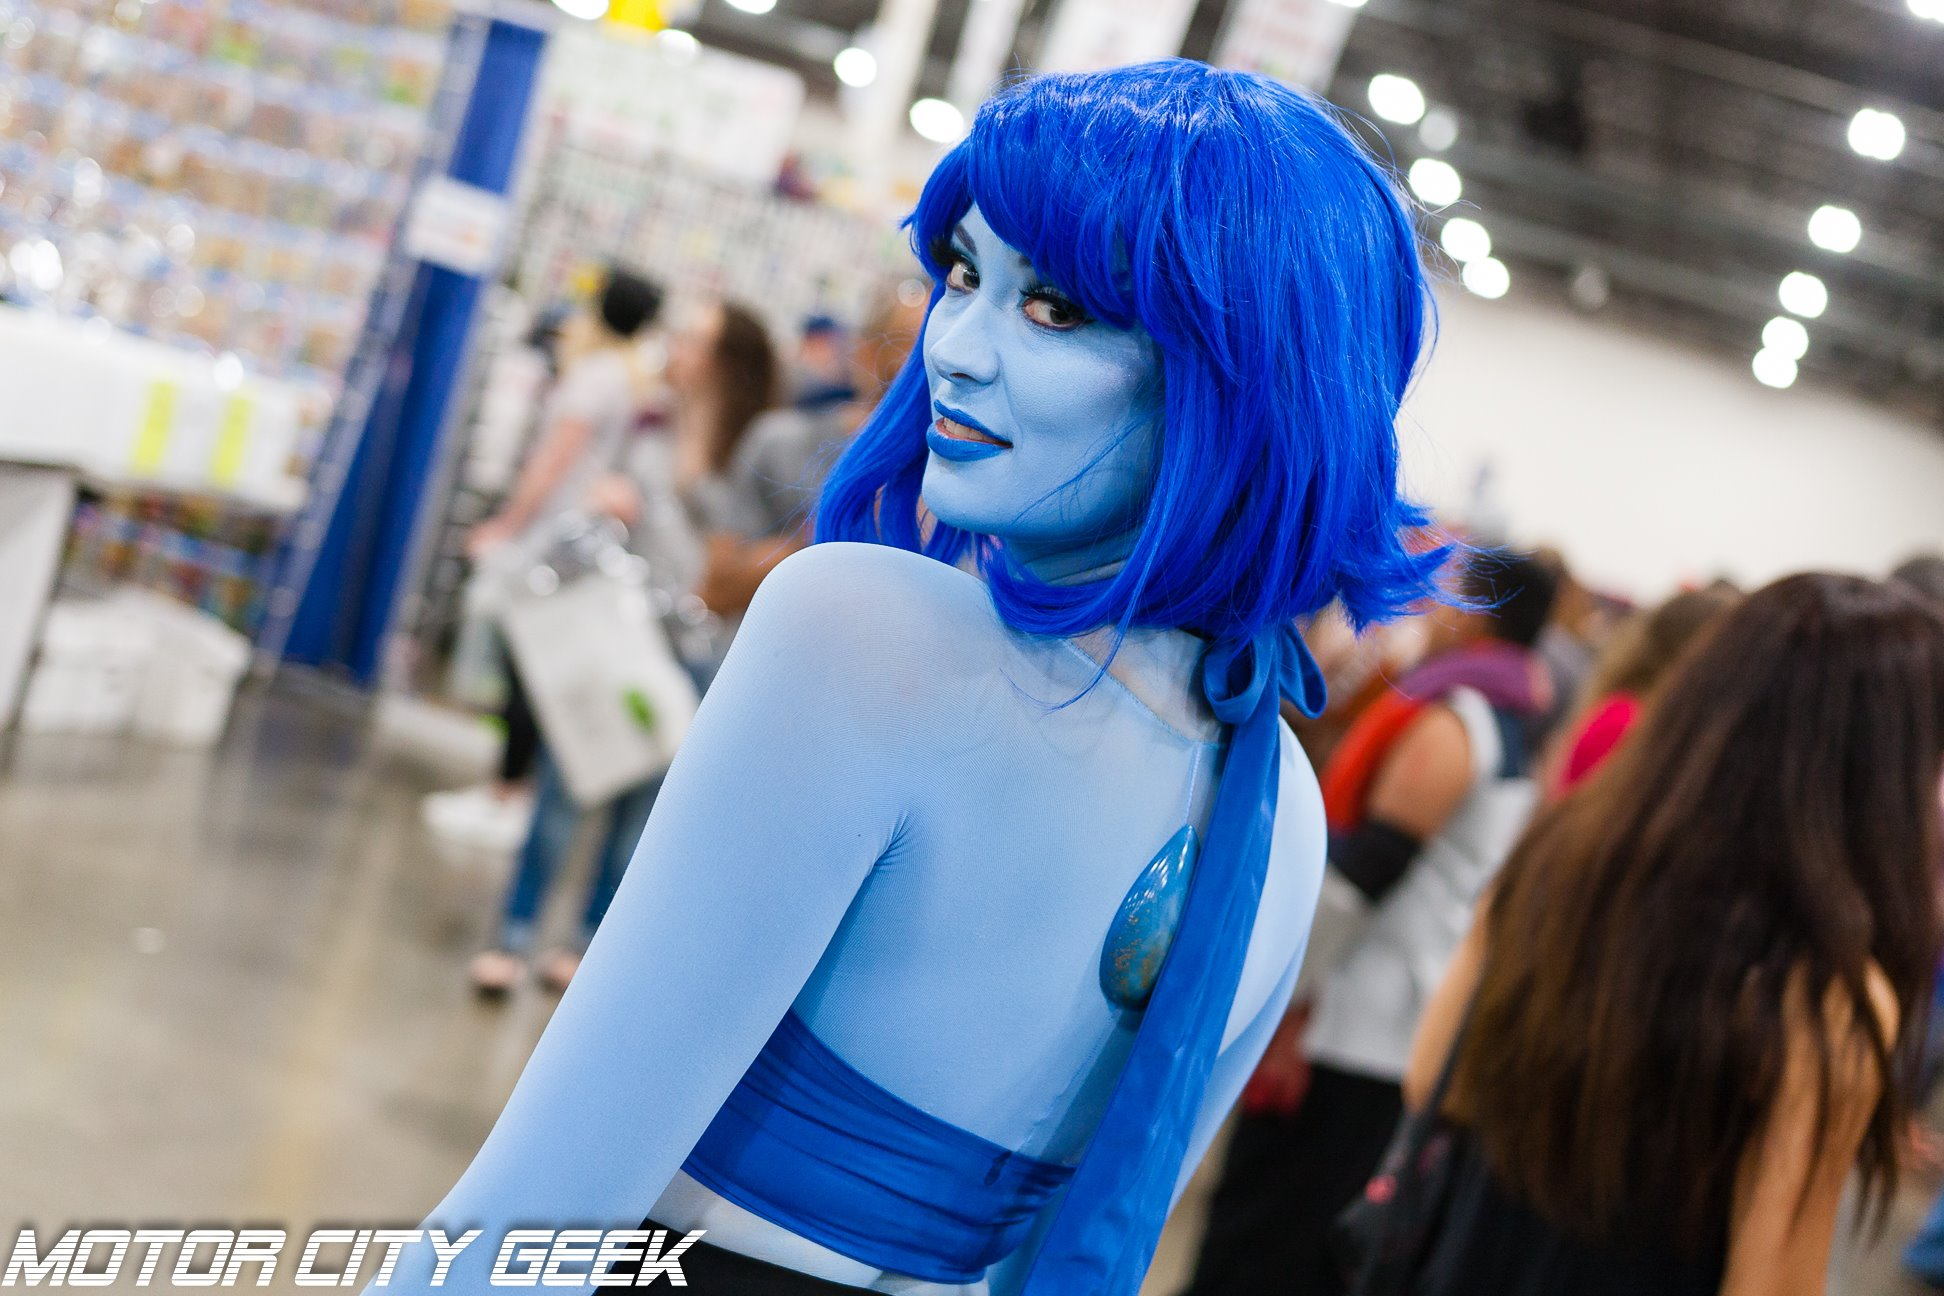 Motor city comic con 2017 sunday motor city geek for Detroit tattoo convention 2017